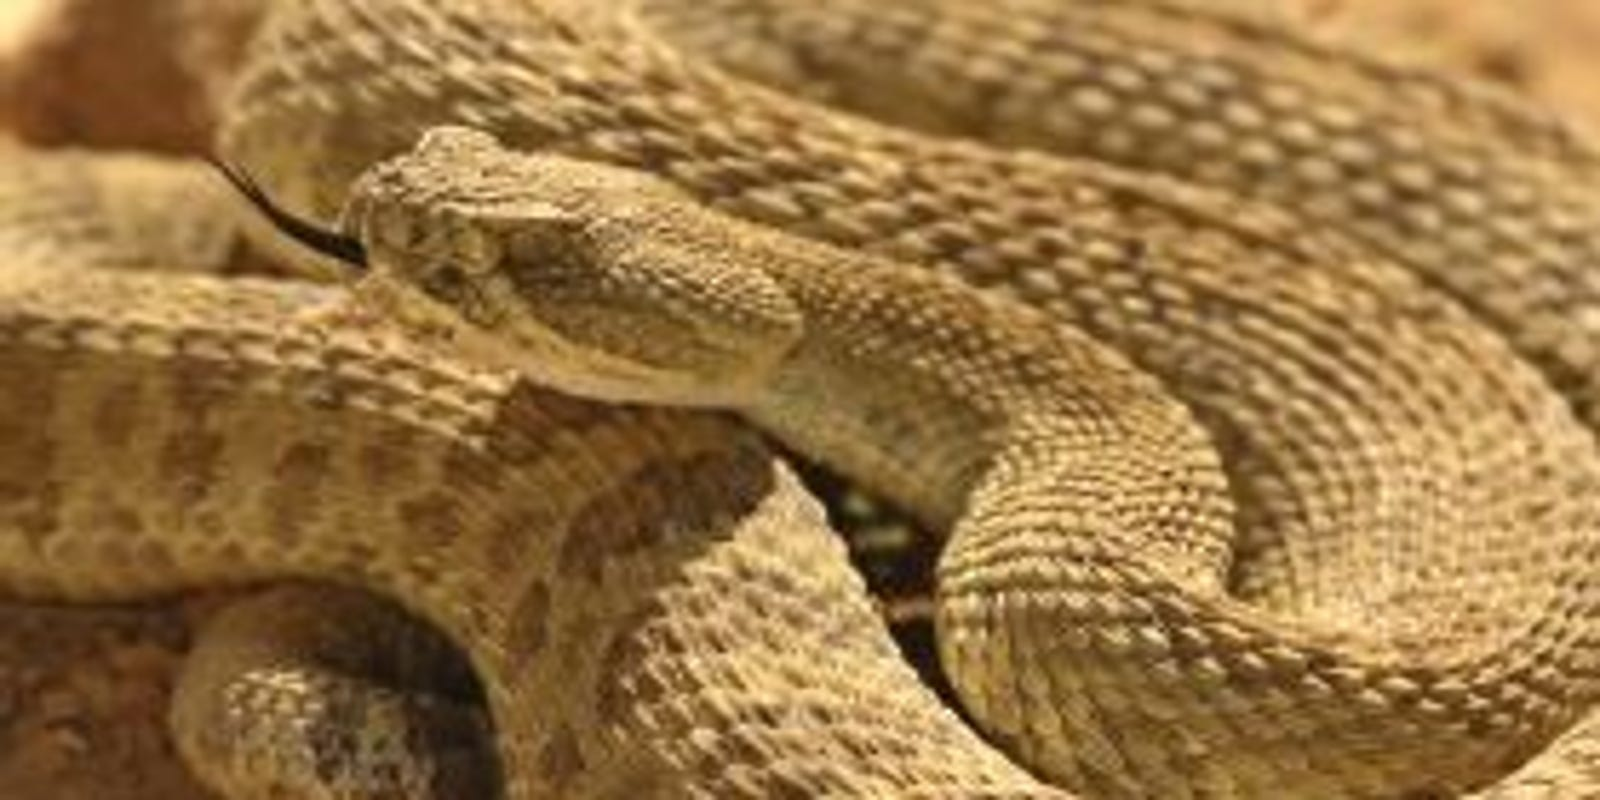 4 things you need to know about prairie rattlesnakes